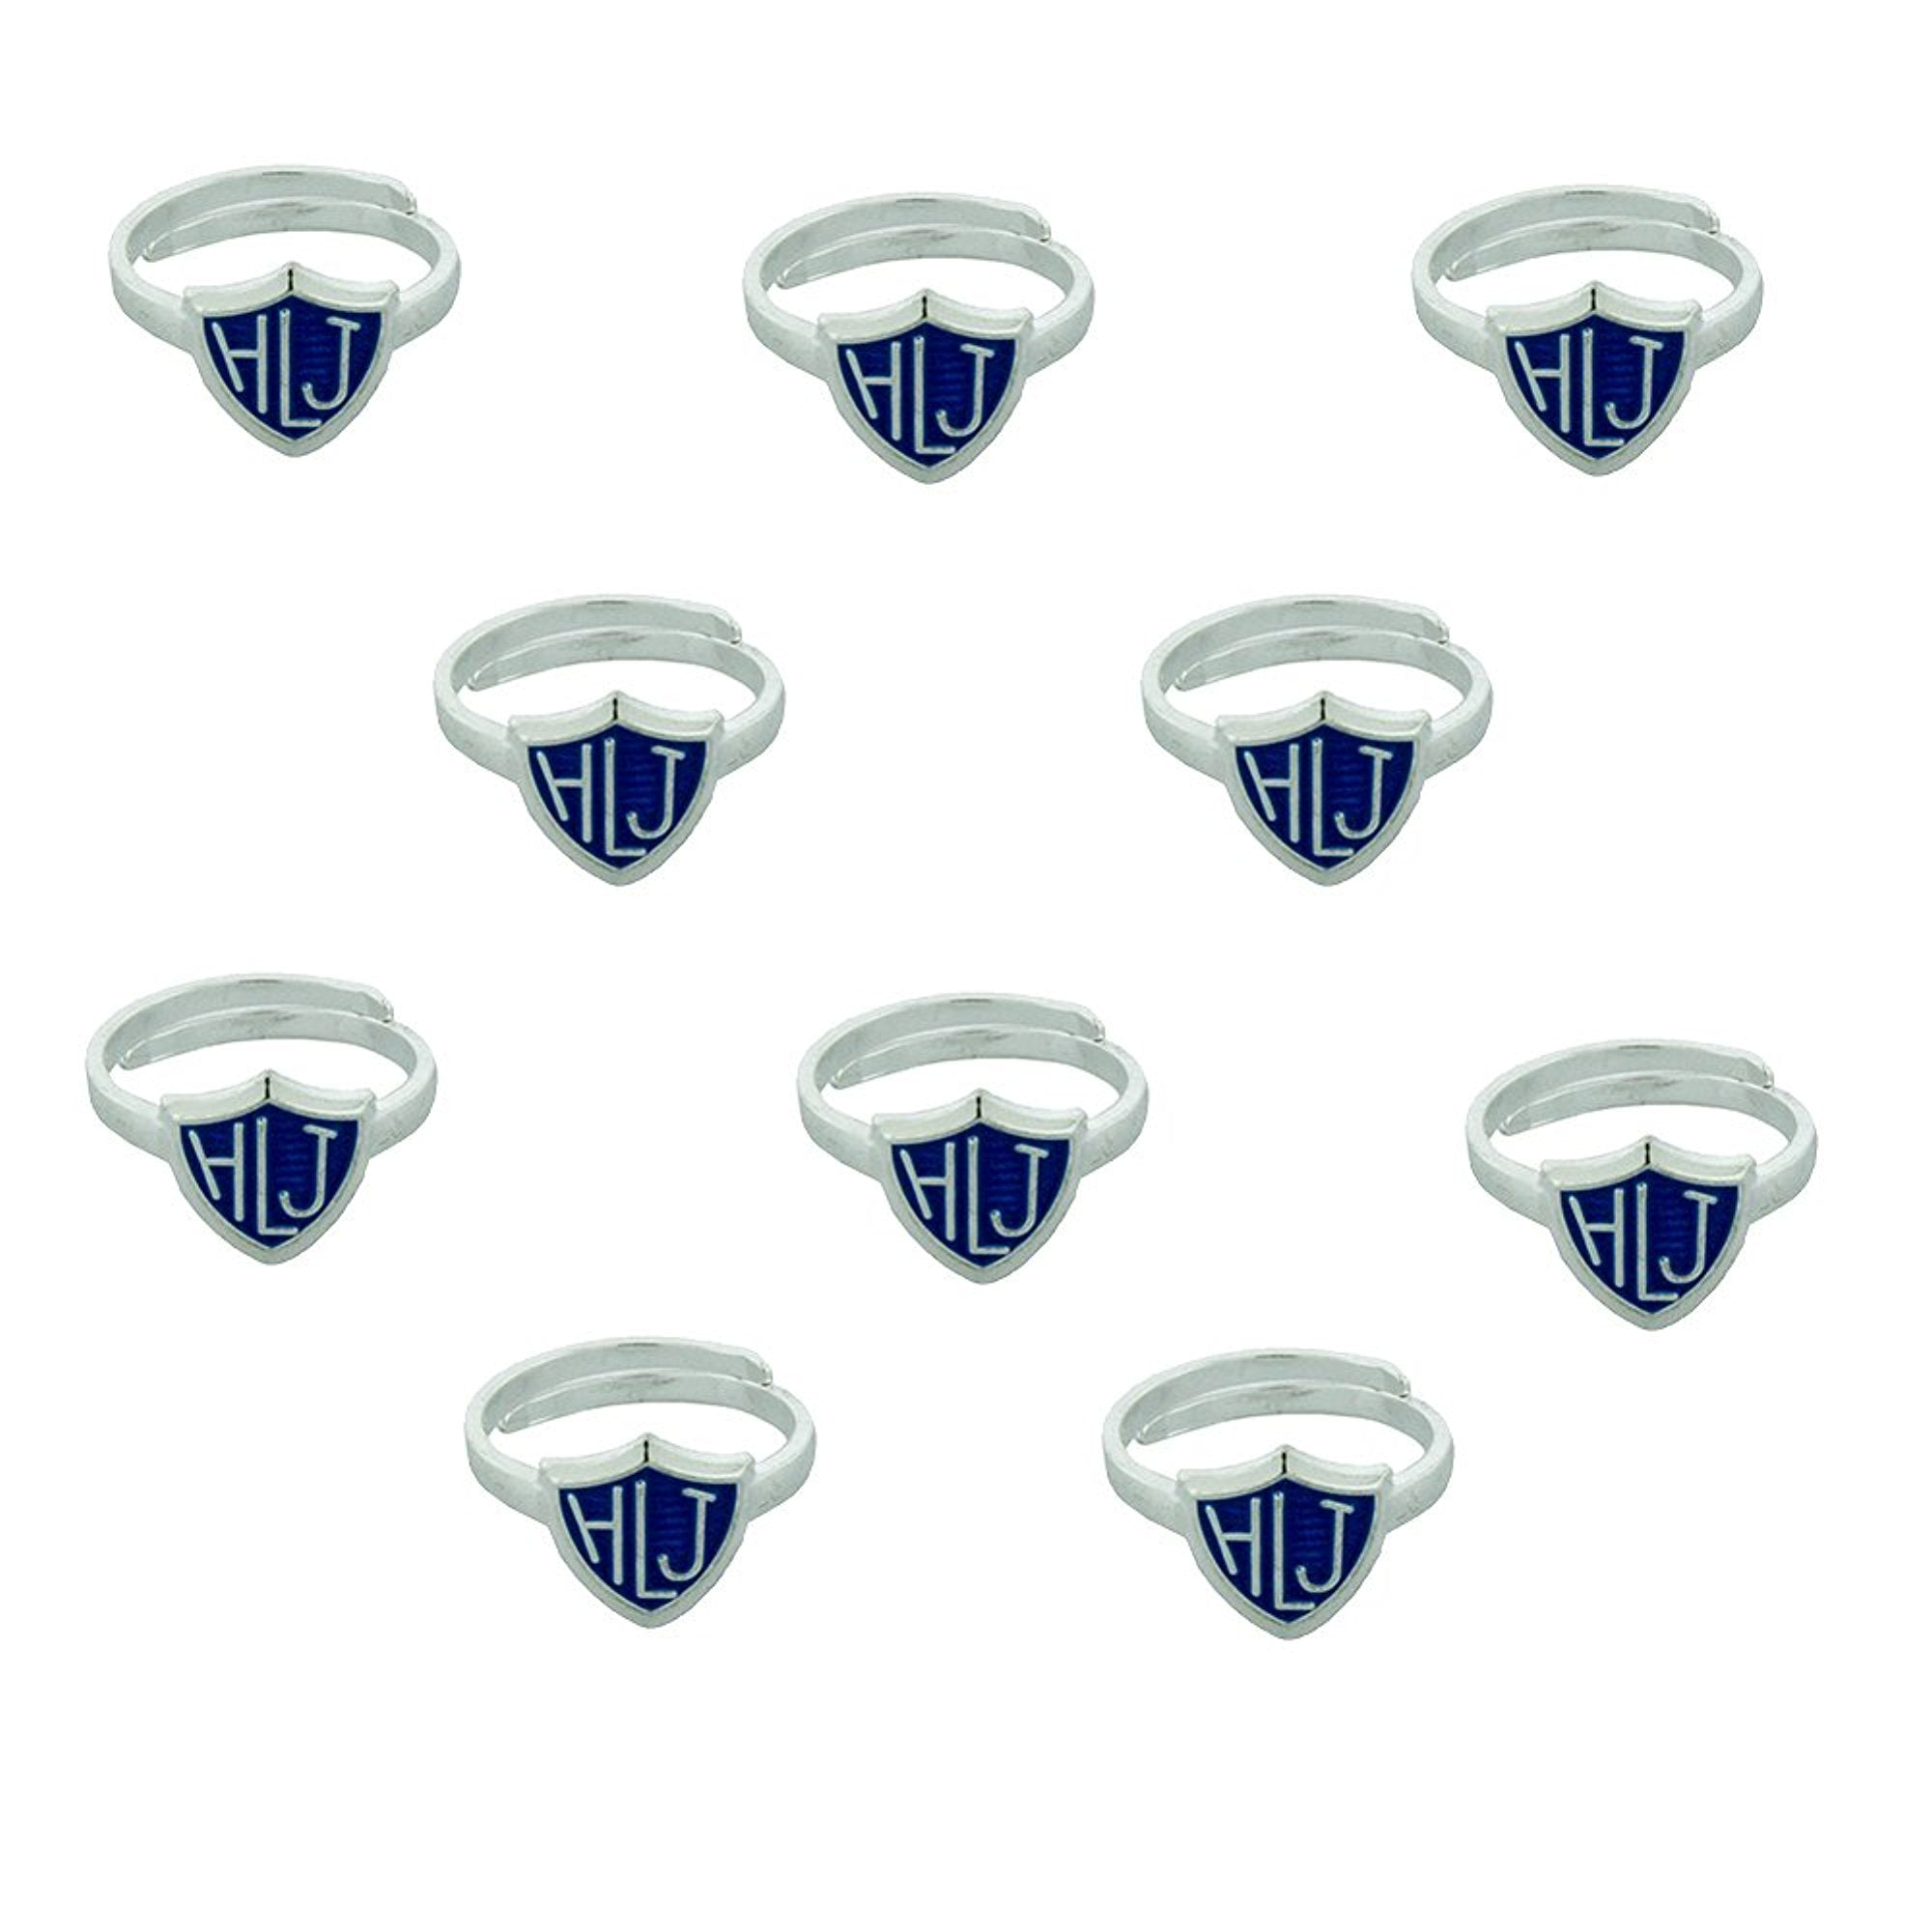 H14HLJ-B Mormon LDS Unisex Kid's CTR Ring 10 Pack Blue Adjustable Alloy One Moment In Time